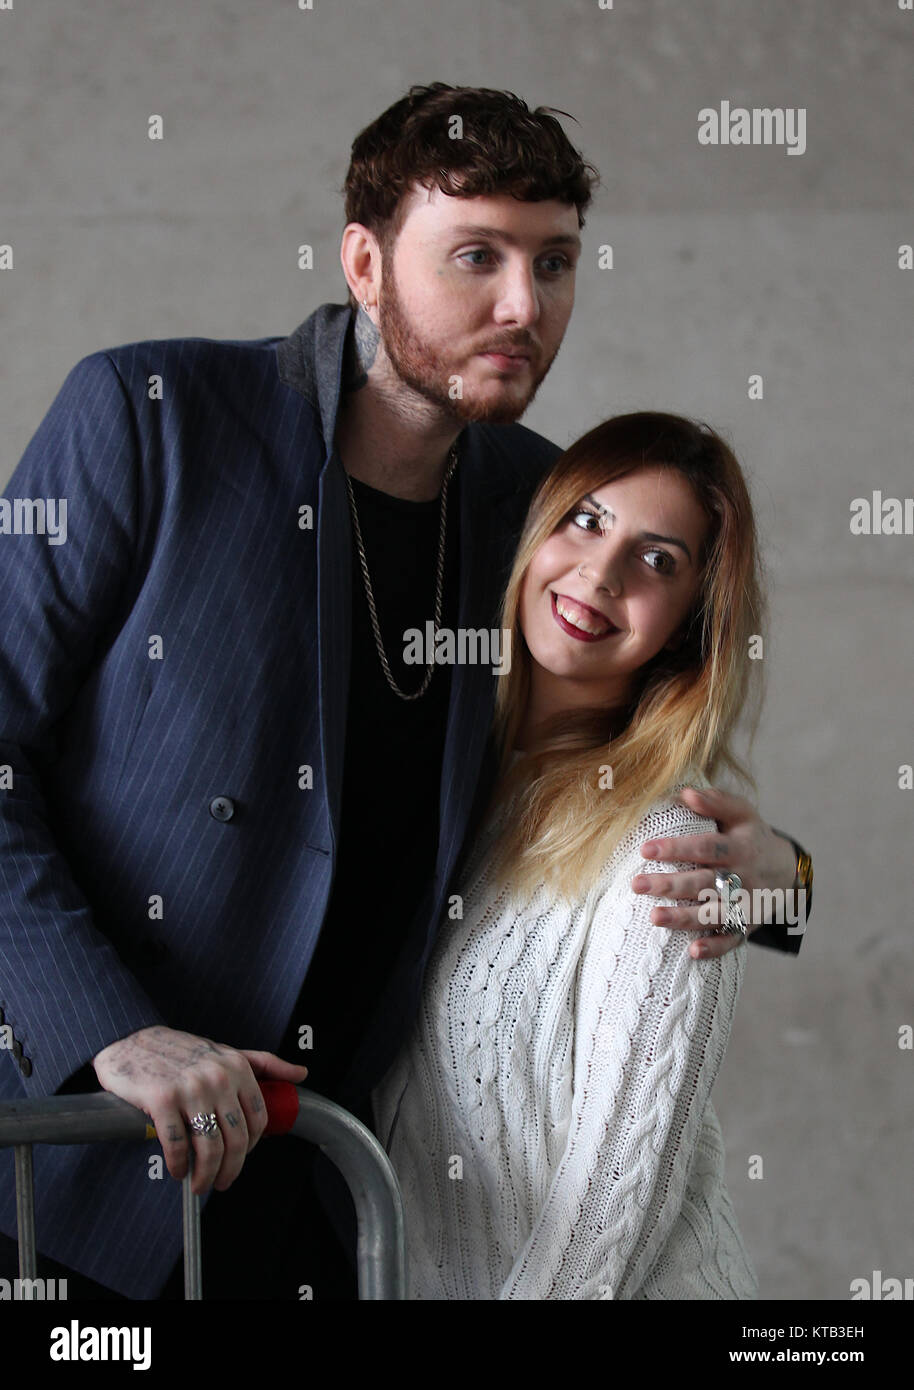 London, UK. 21st December, 2017. James Arthur British singer-songwriter seen receiving gifts from fans at the BBC Stock Photo